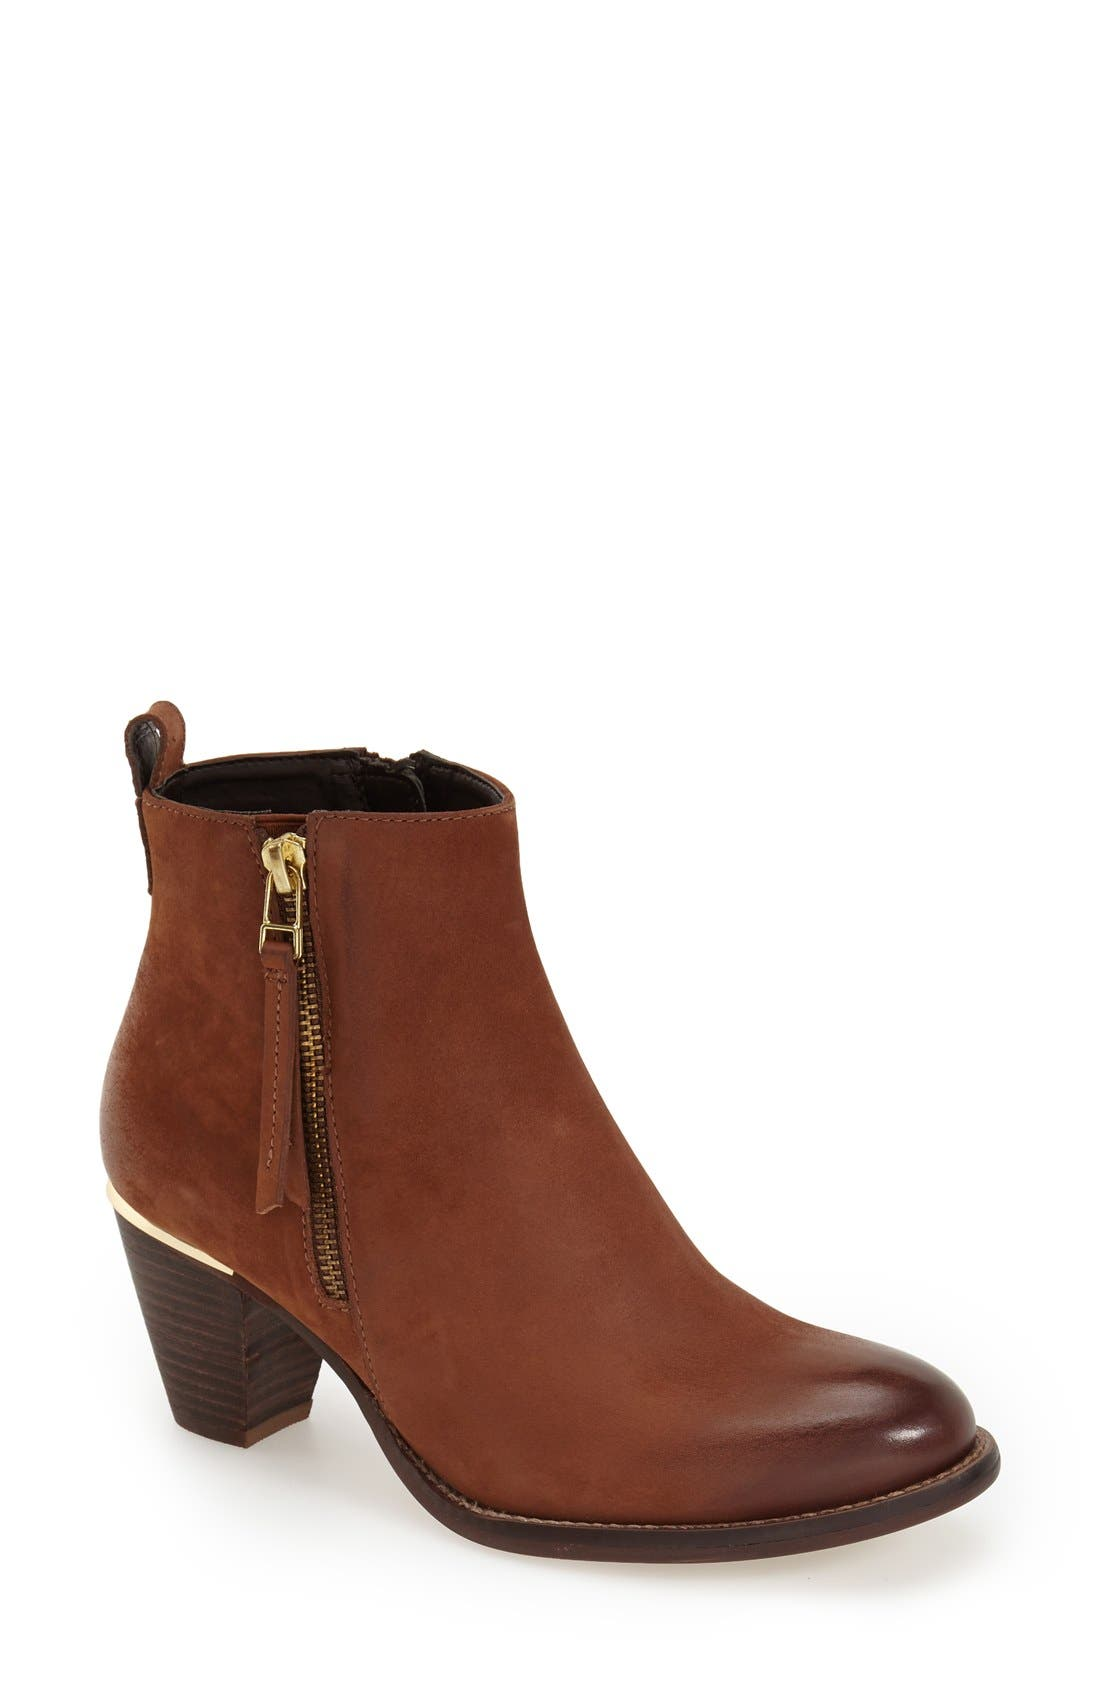 'Wantagh' Leather Ankle Boot,                             Main thumbnail 1, color,                             Cognac Leather